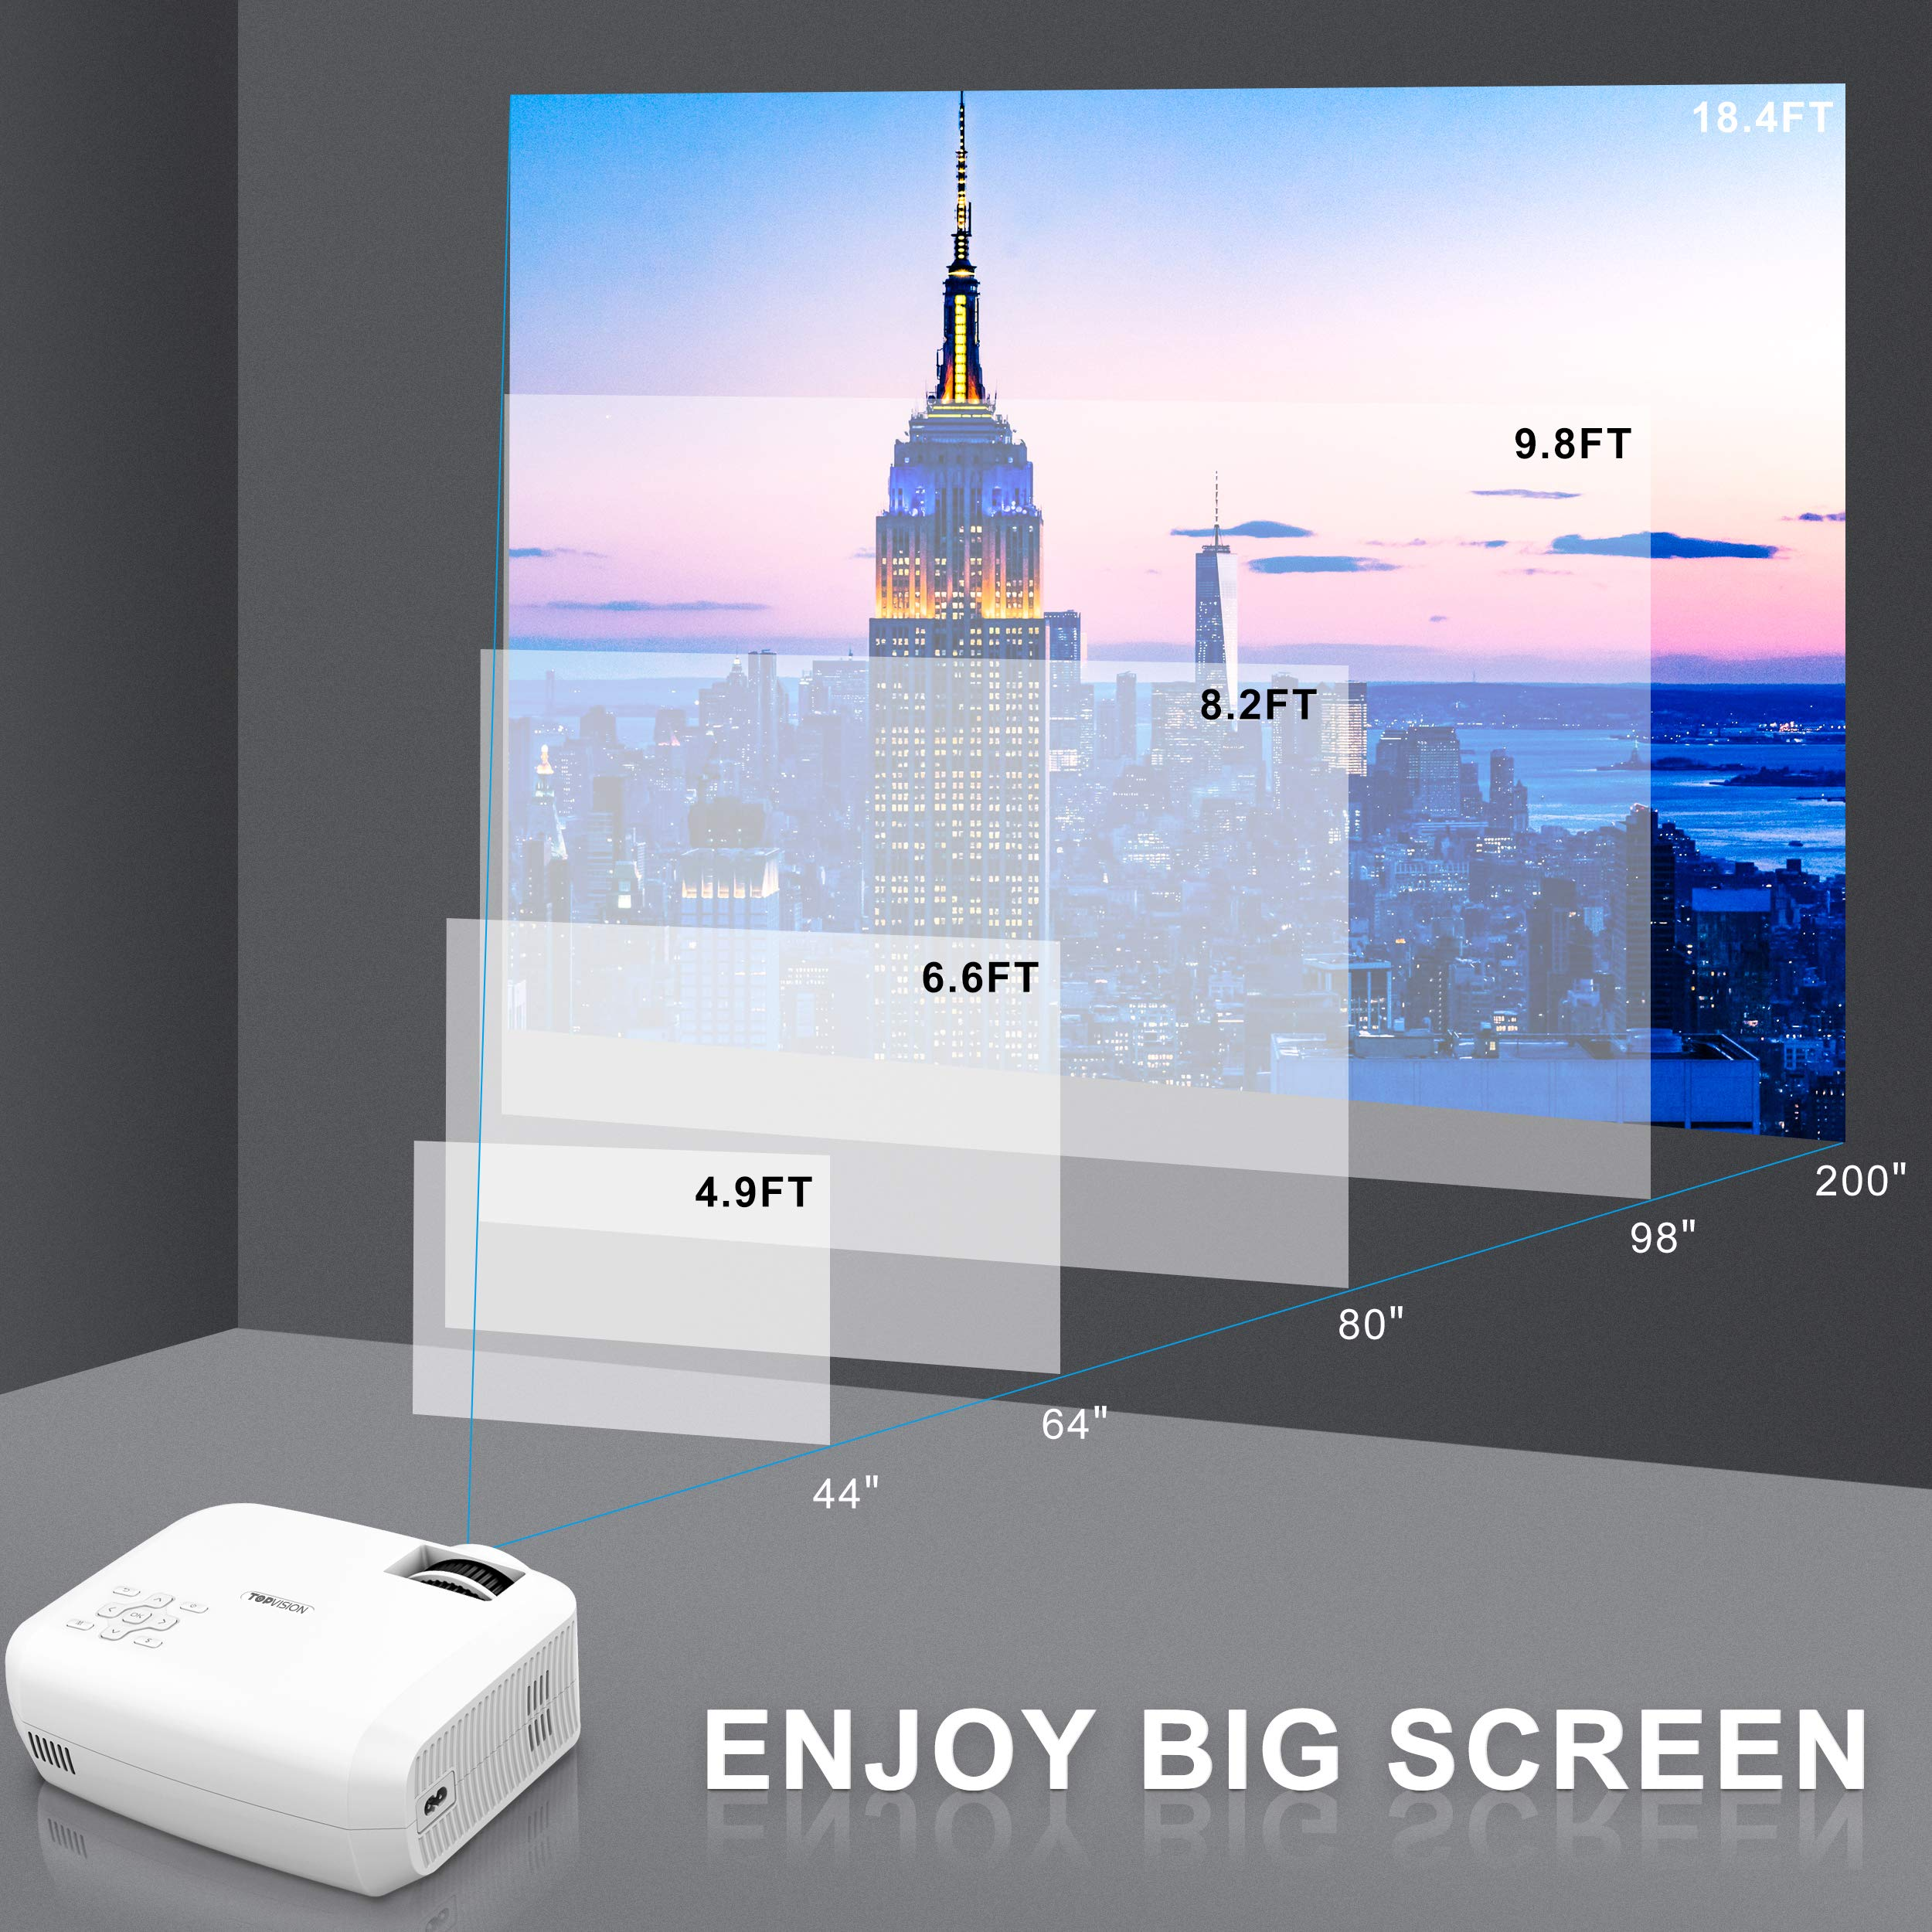 Video Projector, TOPVISION Full HD LED Projector with 3600Lux 2019 Upgraded, 60,000 Hrs Home Movie Projector 1080P Supported for Indoor/Outdoor, Compatible with Fire TV Stick, PS4, HDMI, VGA, AV, USB by TOPVISION (Image #5)